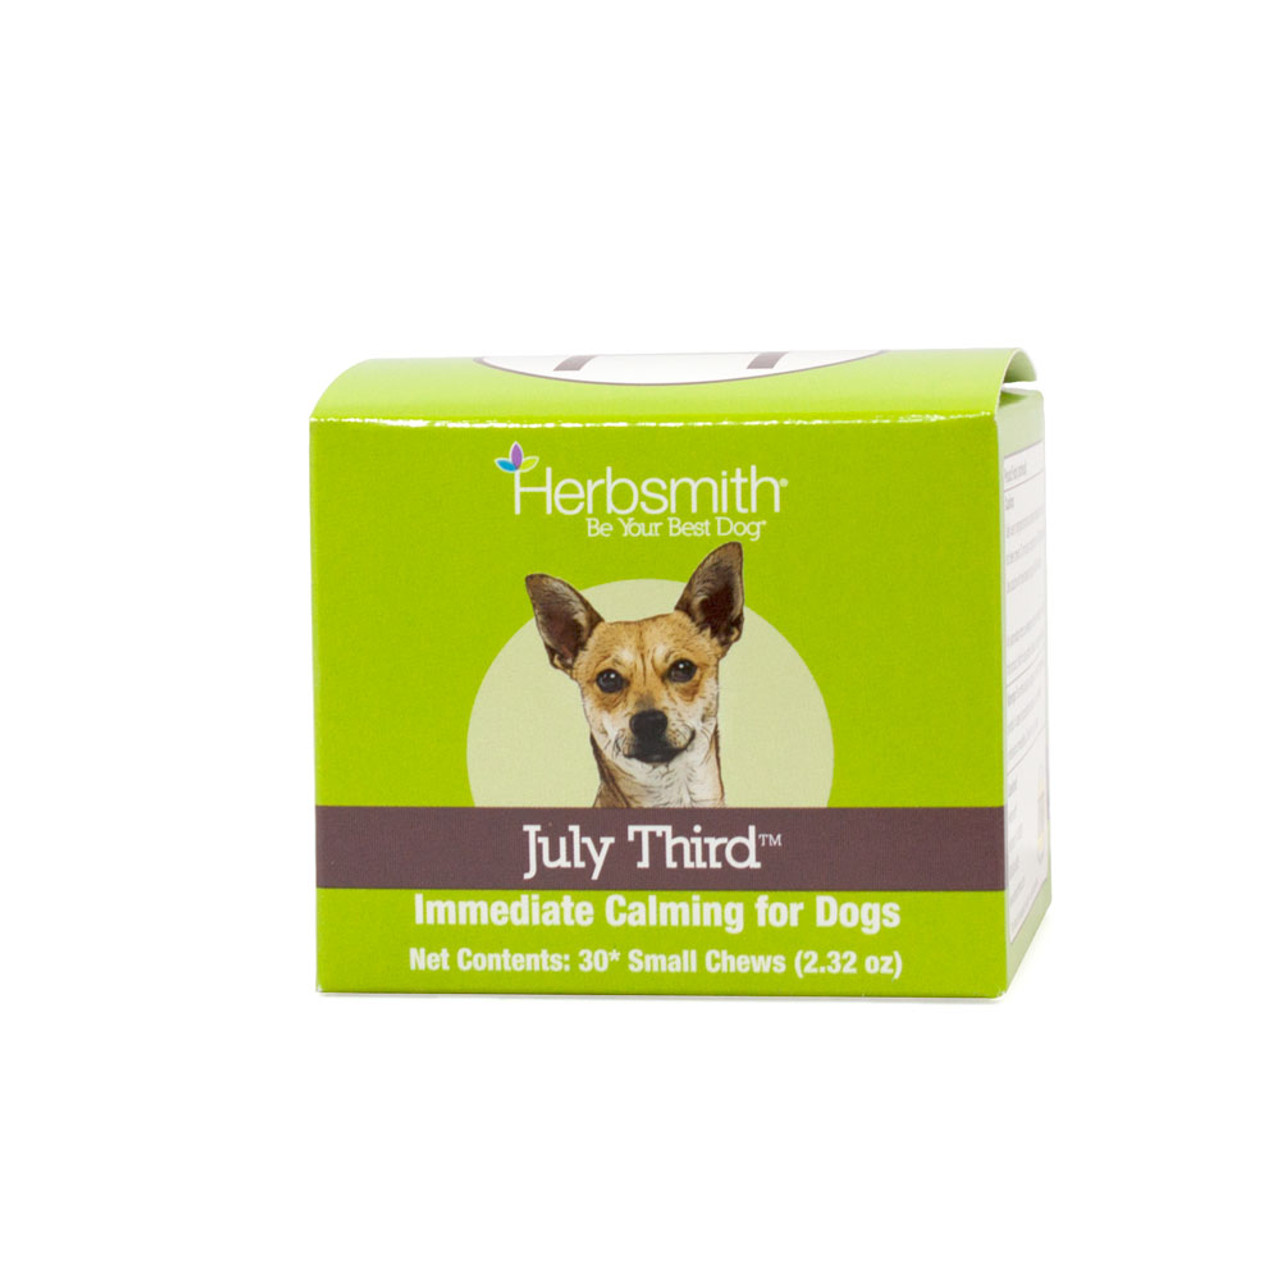 Herbsmith July Third Calming Supplement for Dogs